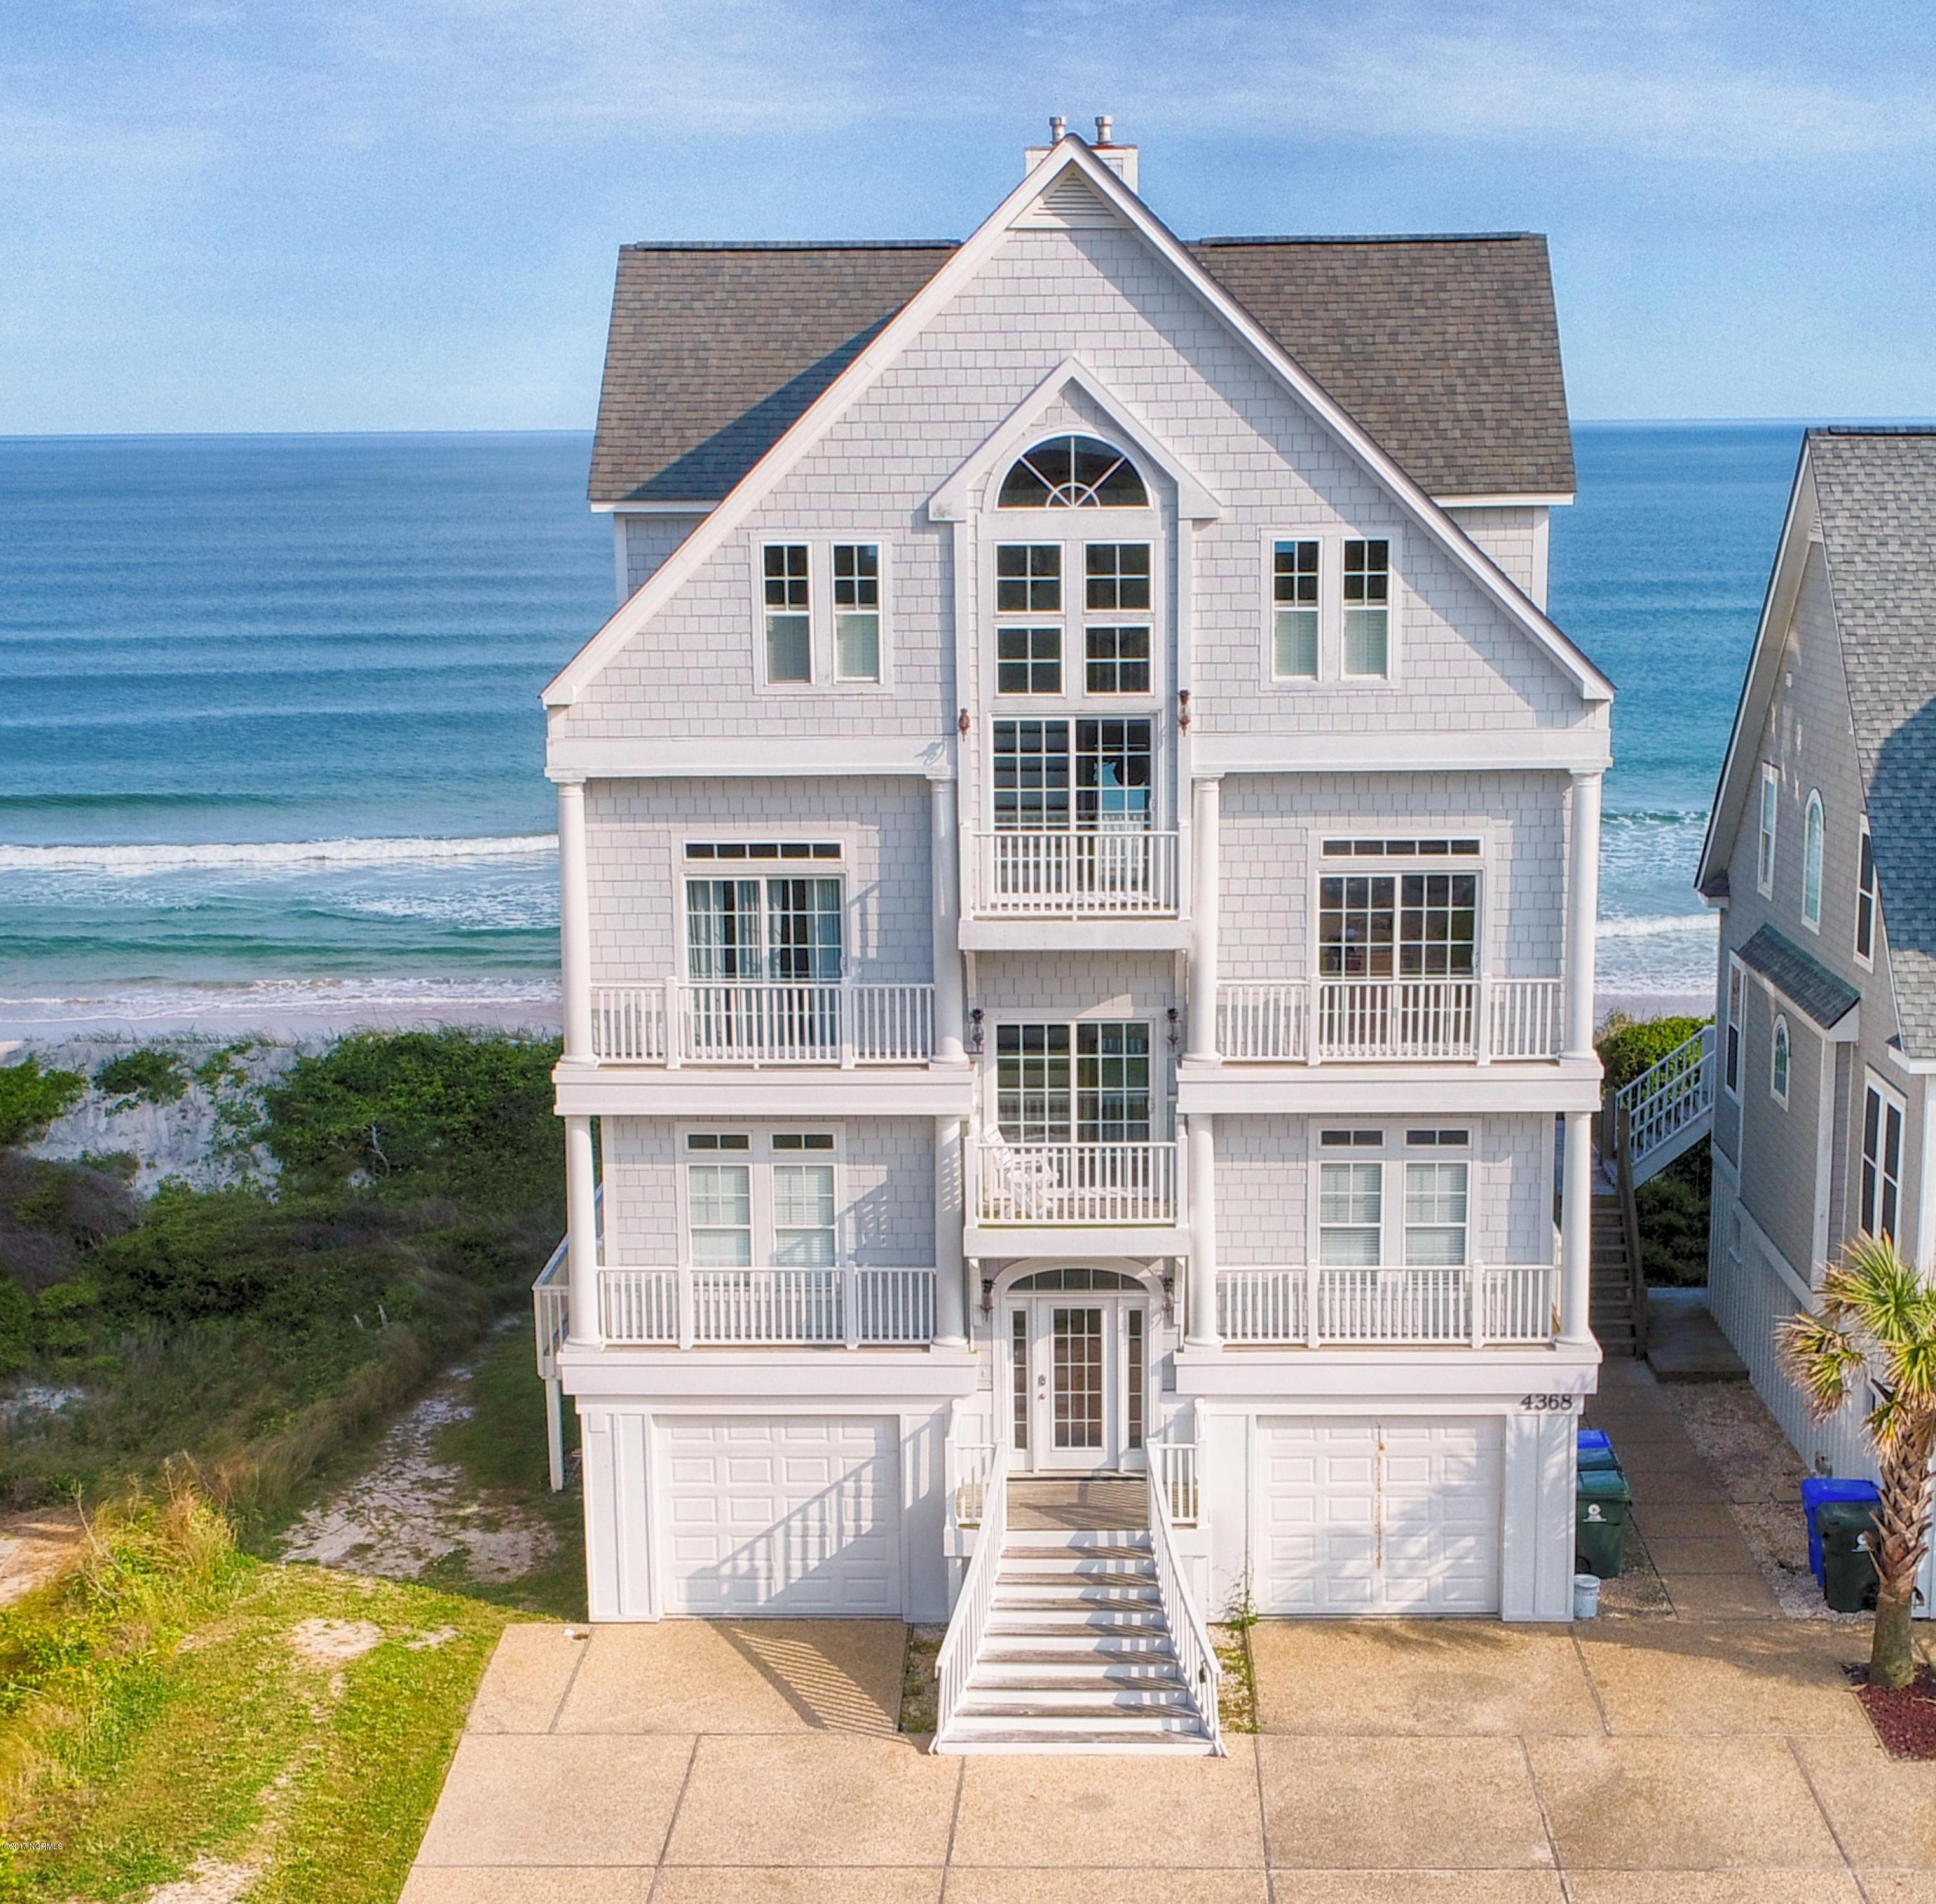 4368 Island Drive, North Topsail Beach, North Carolina, 7 Bedrooms Bedrooms, 10 Rooms Rooms,7 BathroomsBathrooms,Single family residence,For sale,Island,100048396